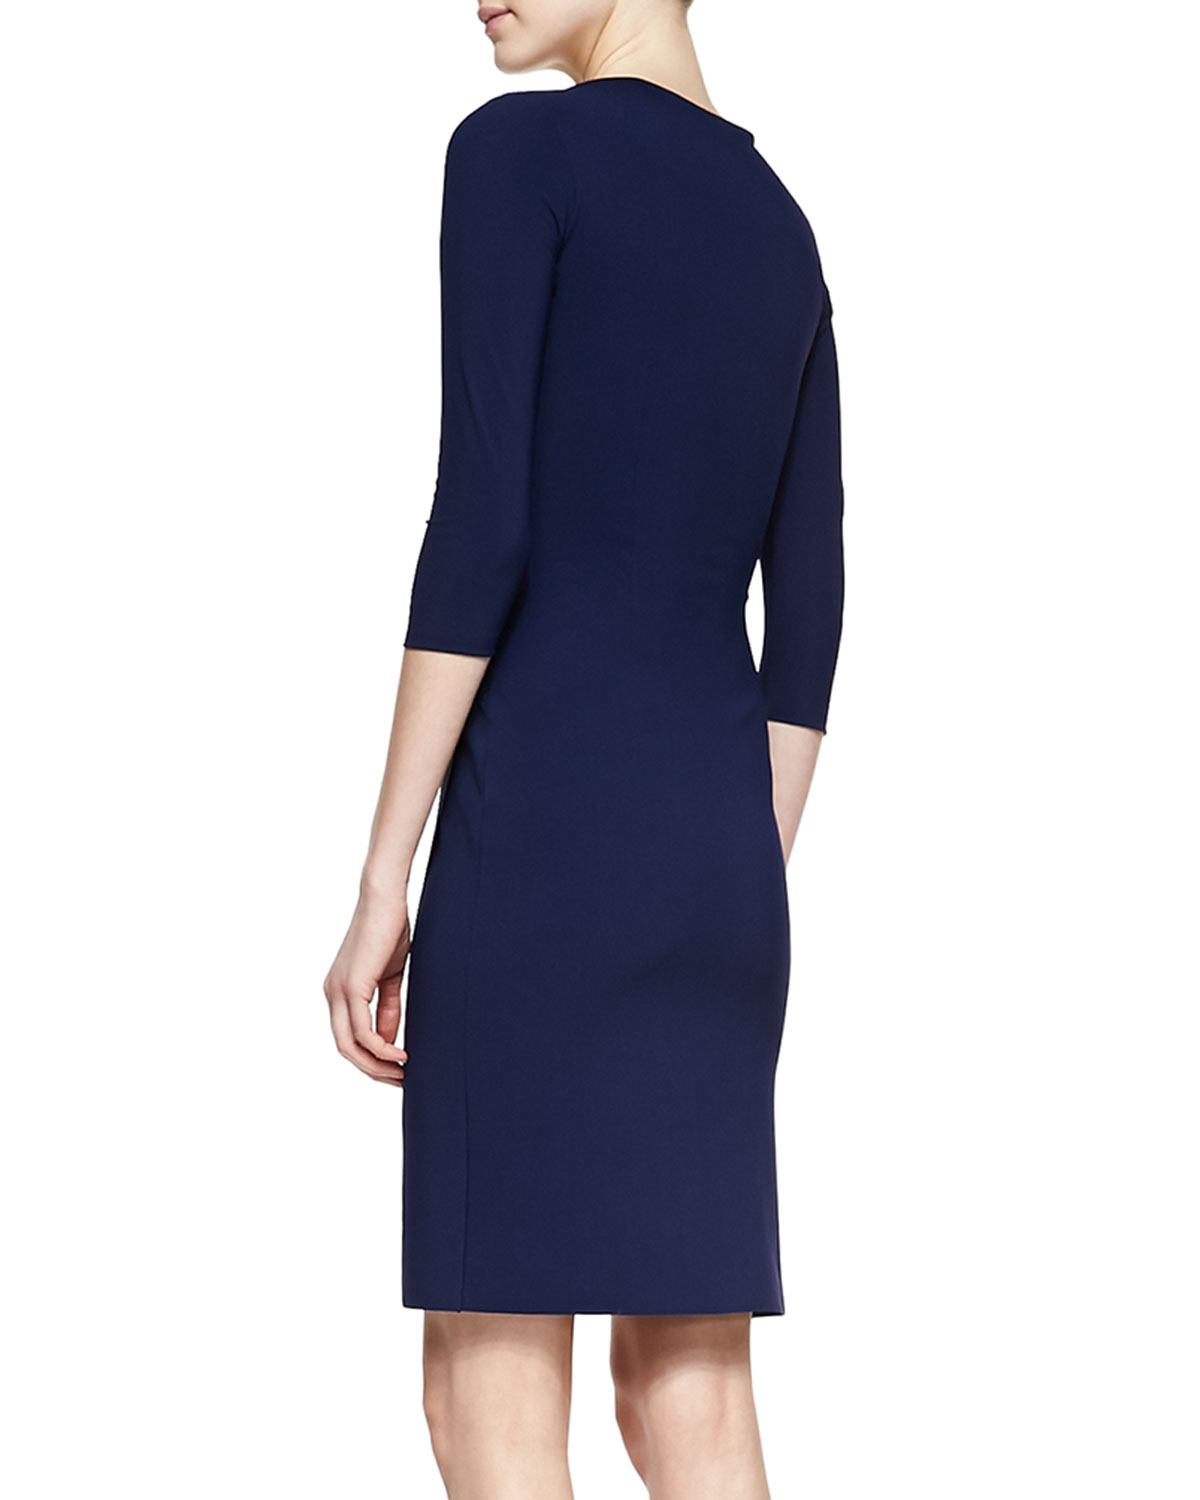 La Petite Robe Di Chiara Boni Fauxwrap Cocktail Dress Navy